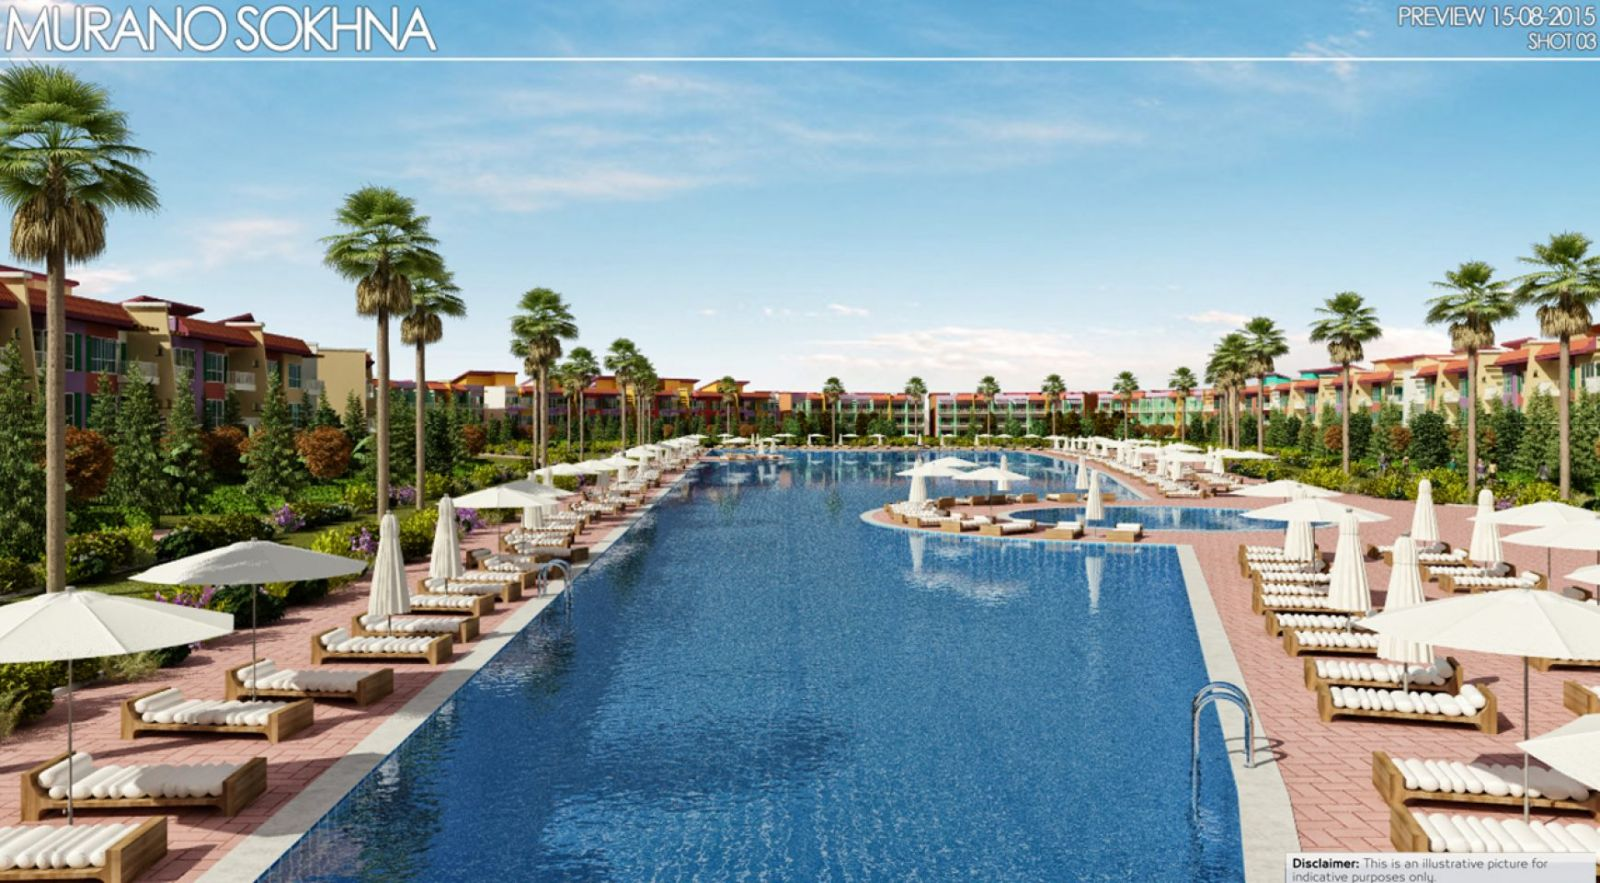 Swimming-pool-in-murano-al-ain-al-sokhna